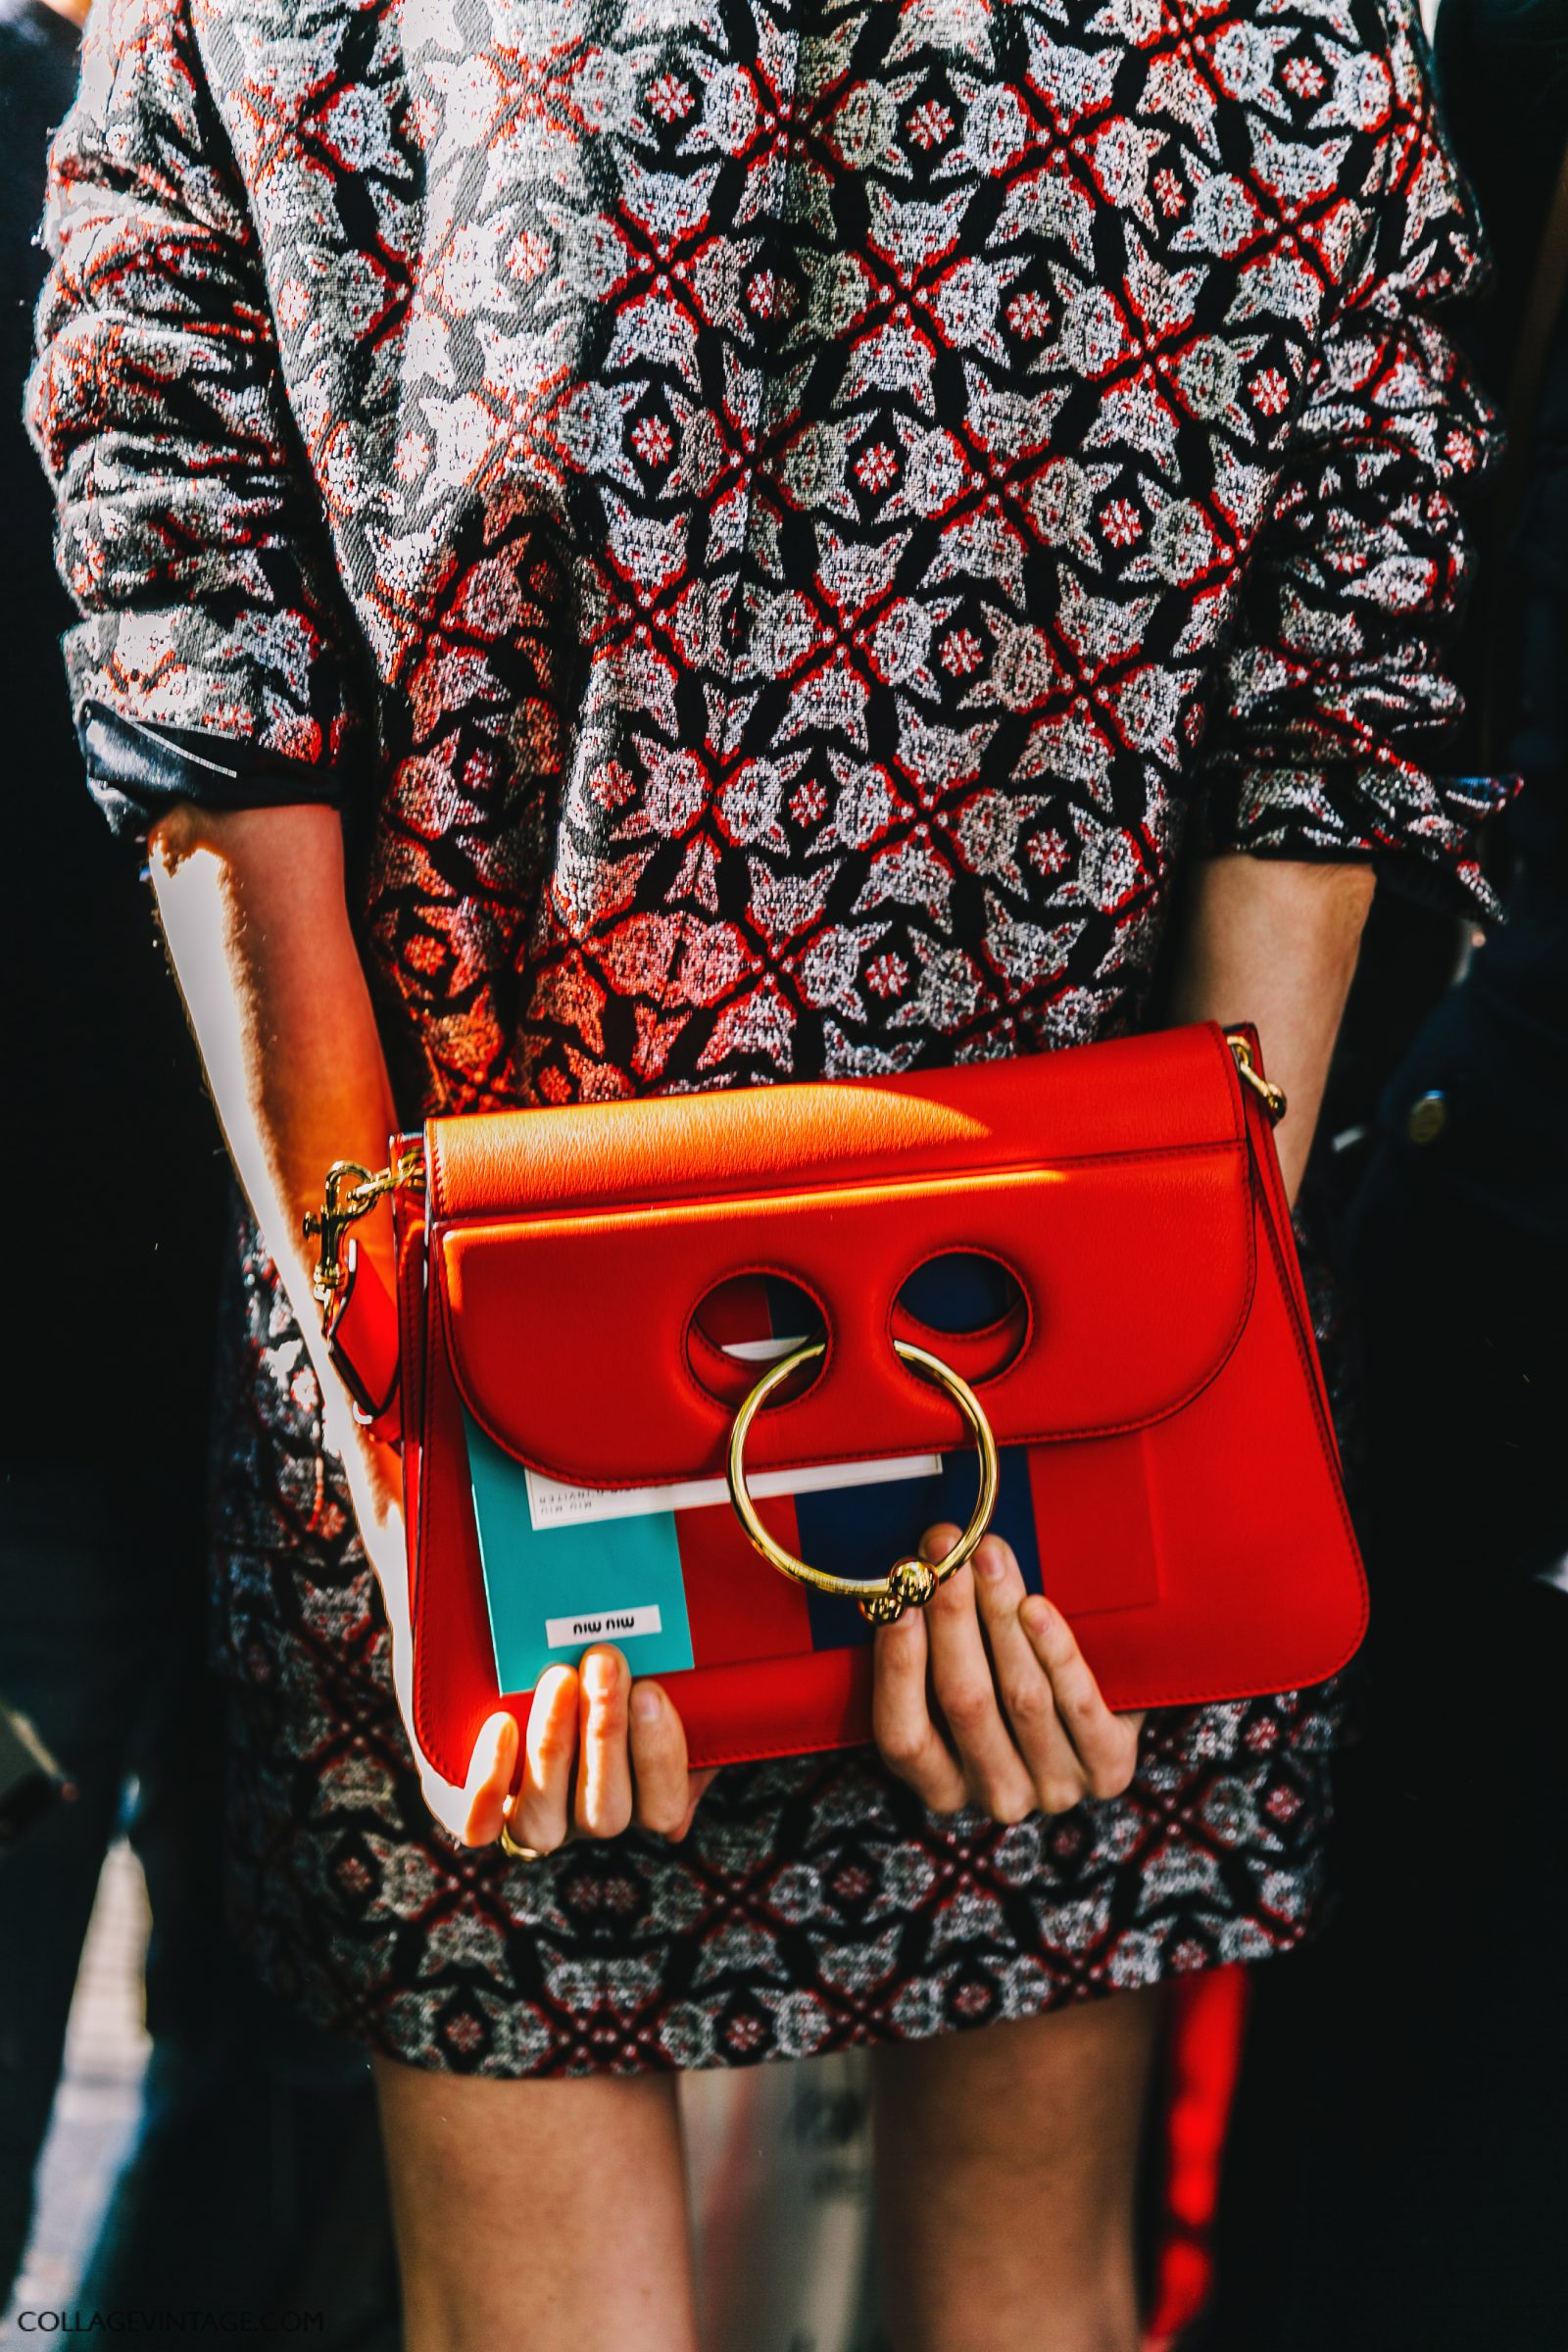 pfw-paris_fashion_week_ss17-street_style-outfit-collage_vintage-louis_vuitton-miu_miu-52